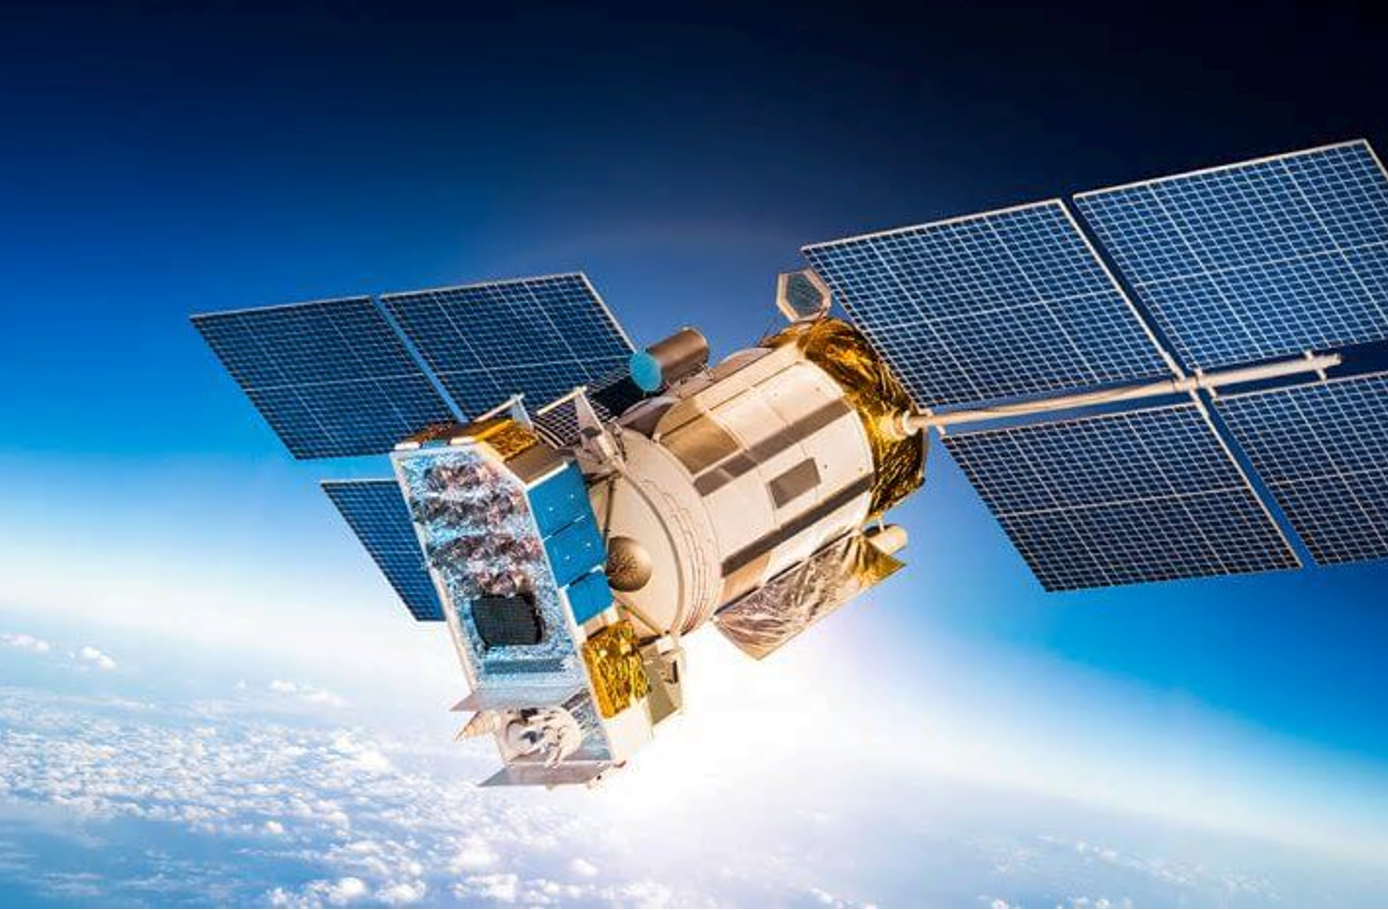 Accelerate space companies' ability to design a system right the first time with the required quality, reliability and safety